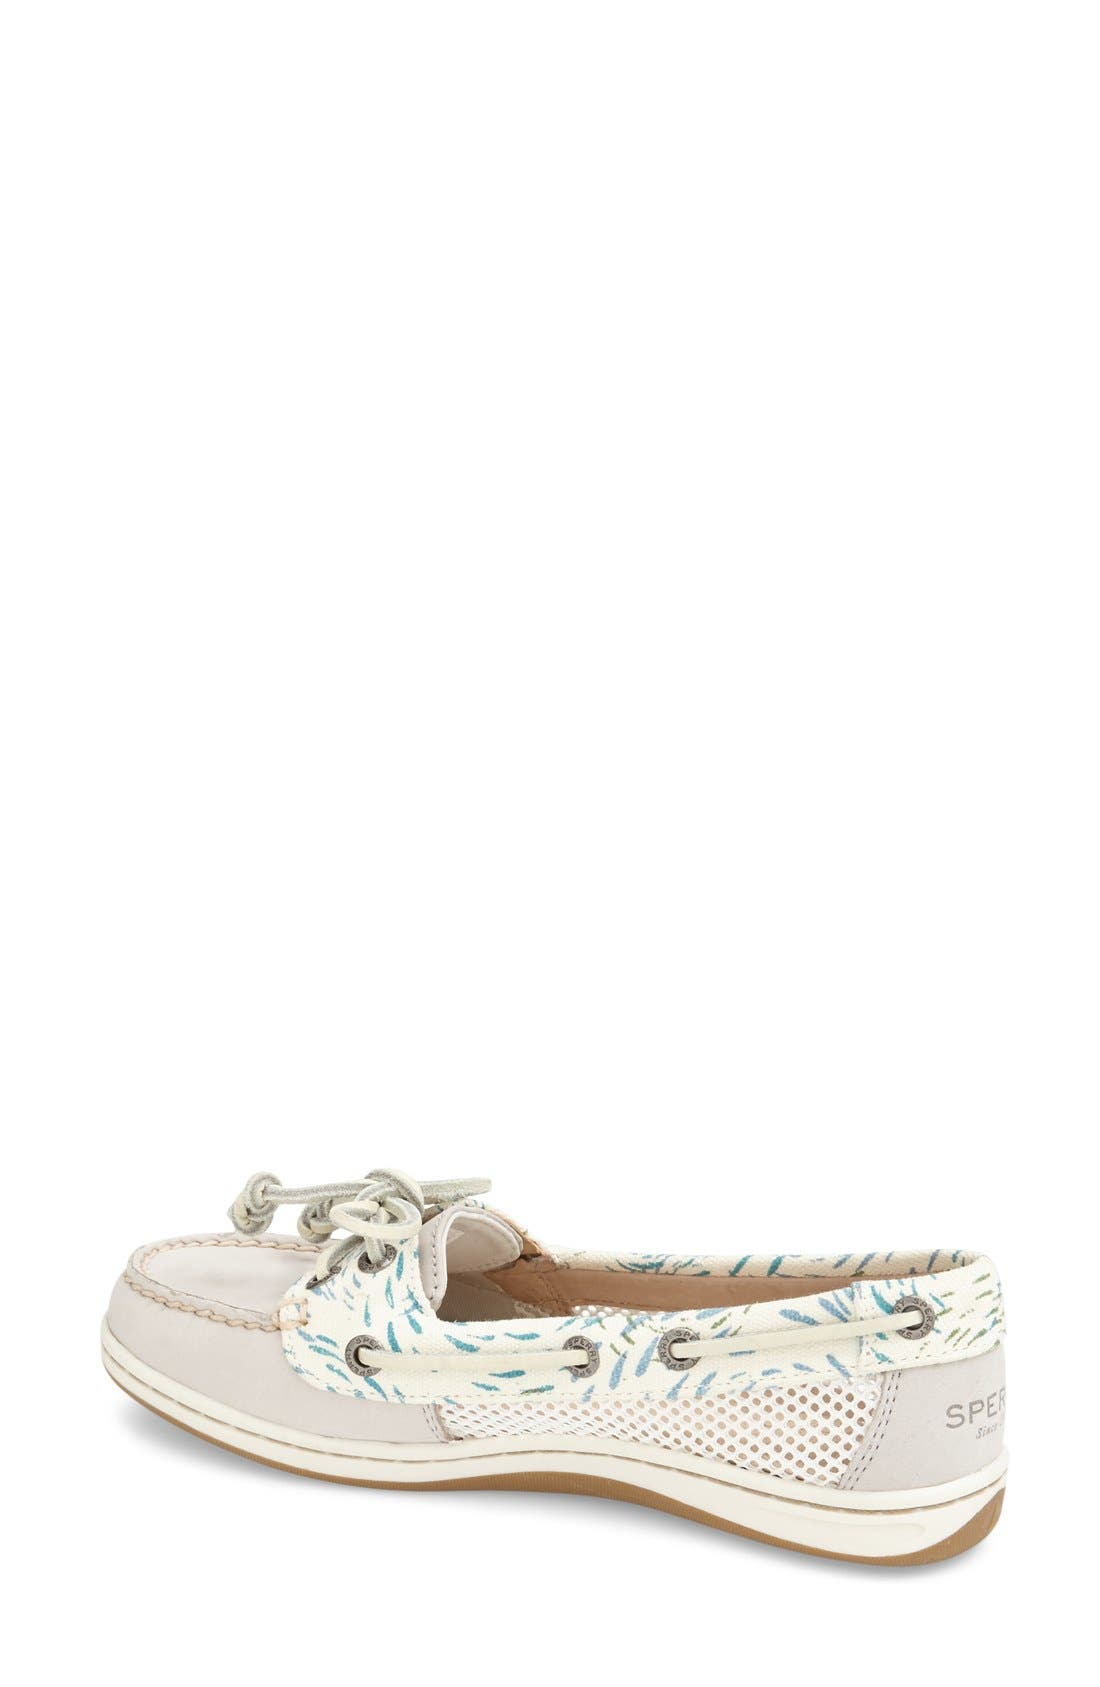 'Firefish' Boat Shoe,                             Alternate thumbnail 24, color,